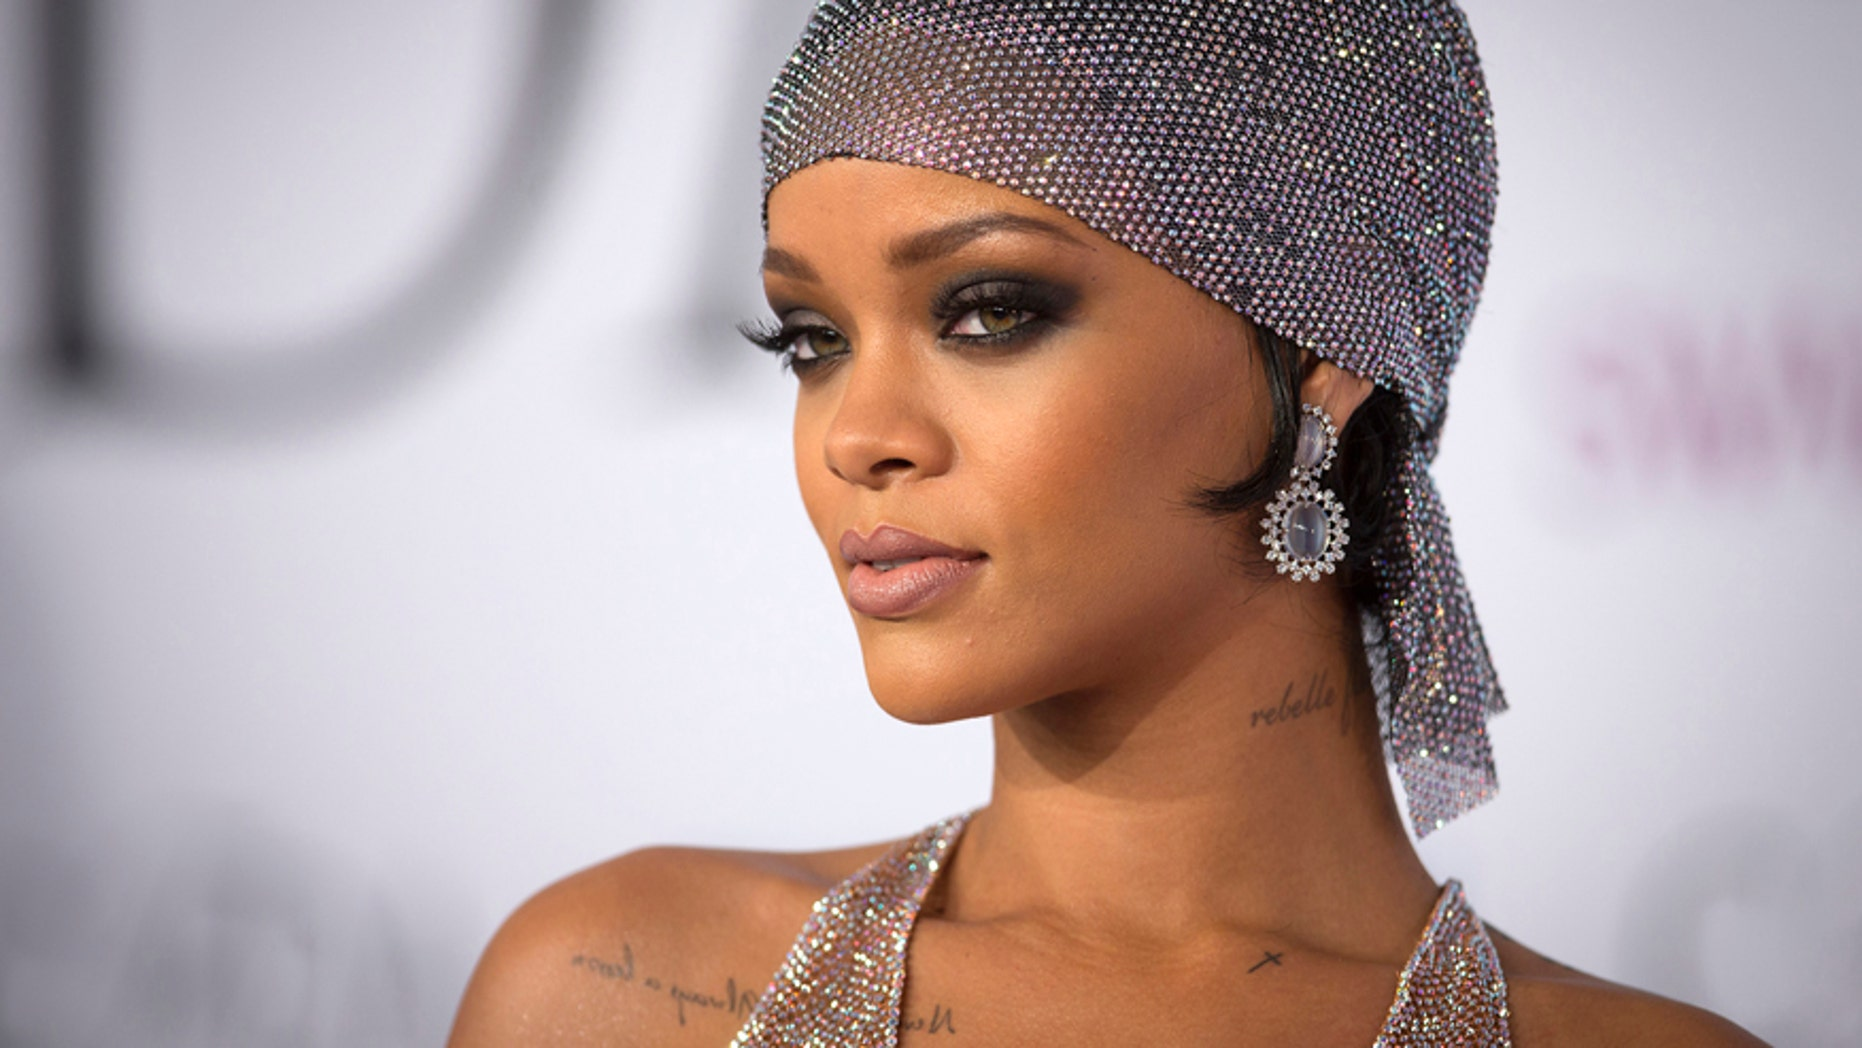 Singer Rihanna arrives for the Council of Fashion Designers of America Awards (CFDA) at Lincoln Center in New York June 2, 2014.